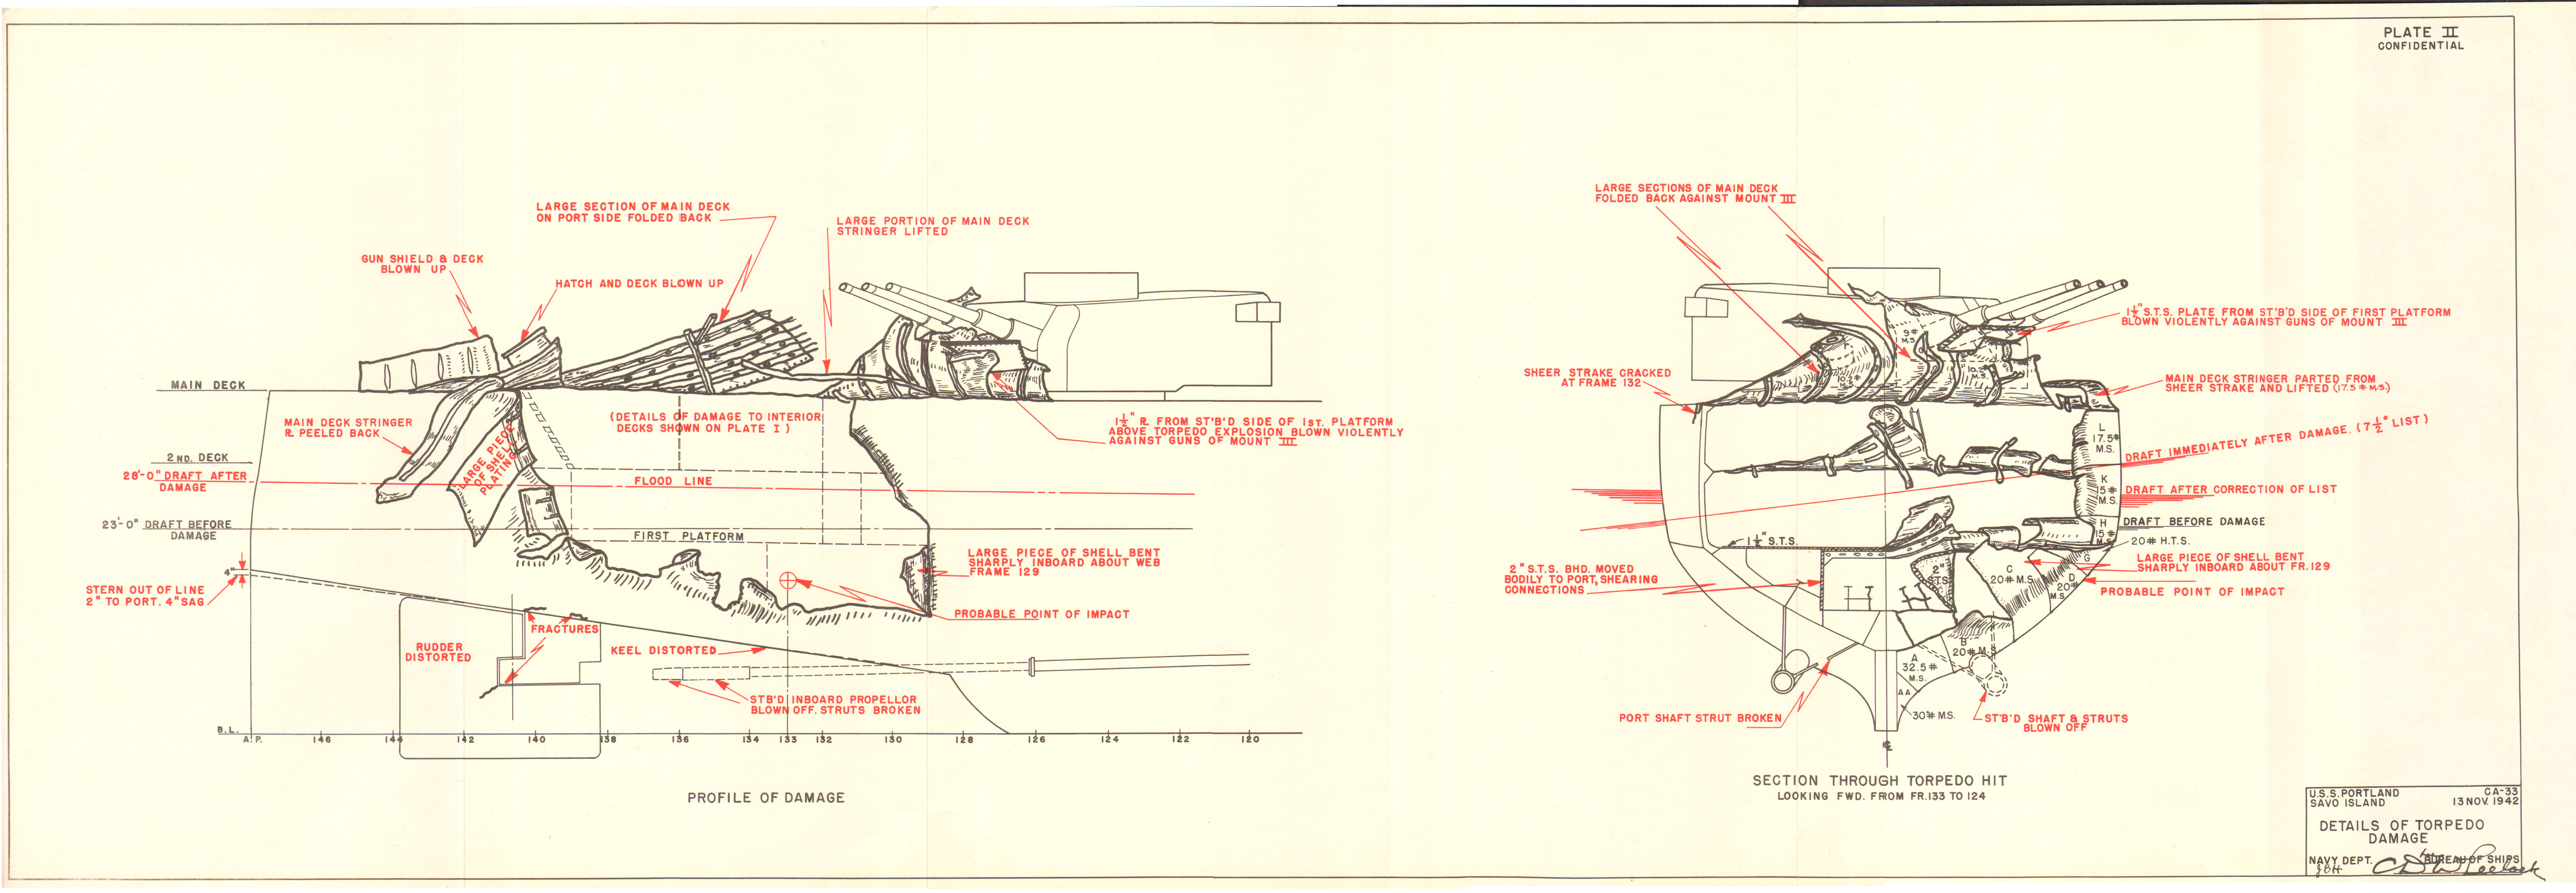 parts of a cruise ship diagram control wiring apfc panel torpedo heater combustion turbine